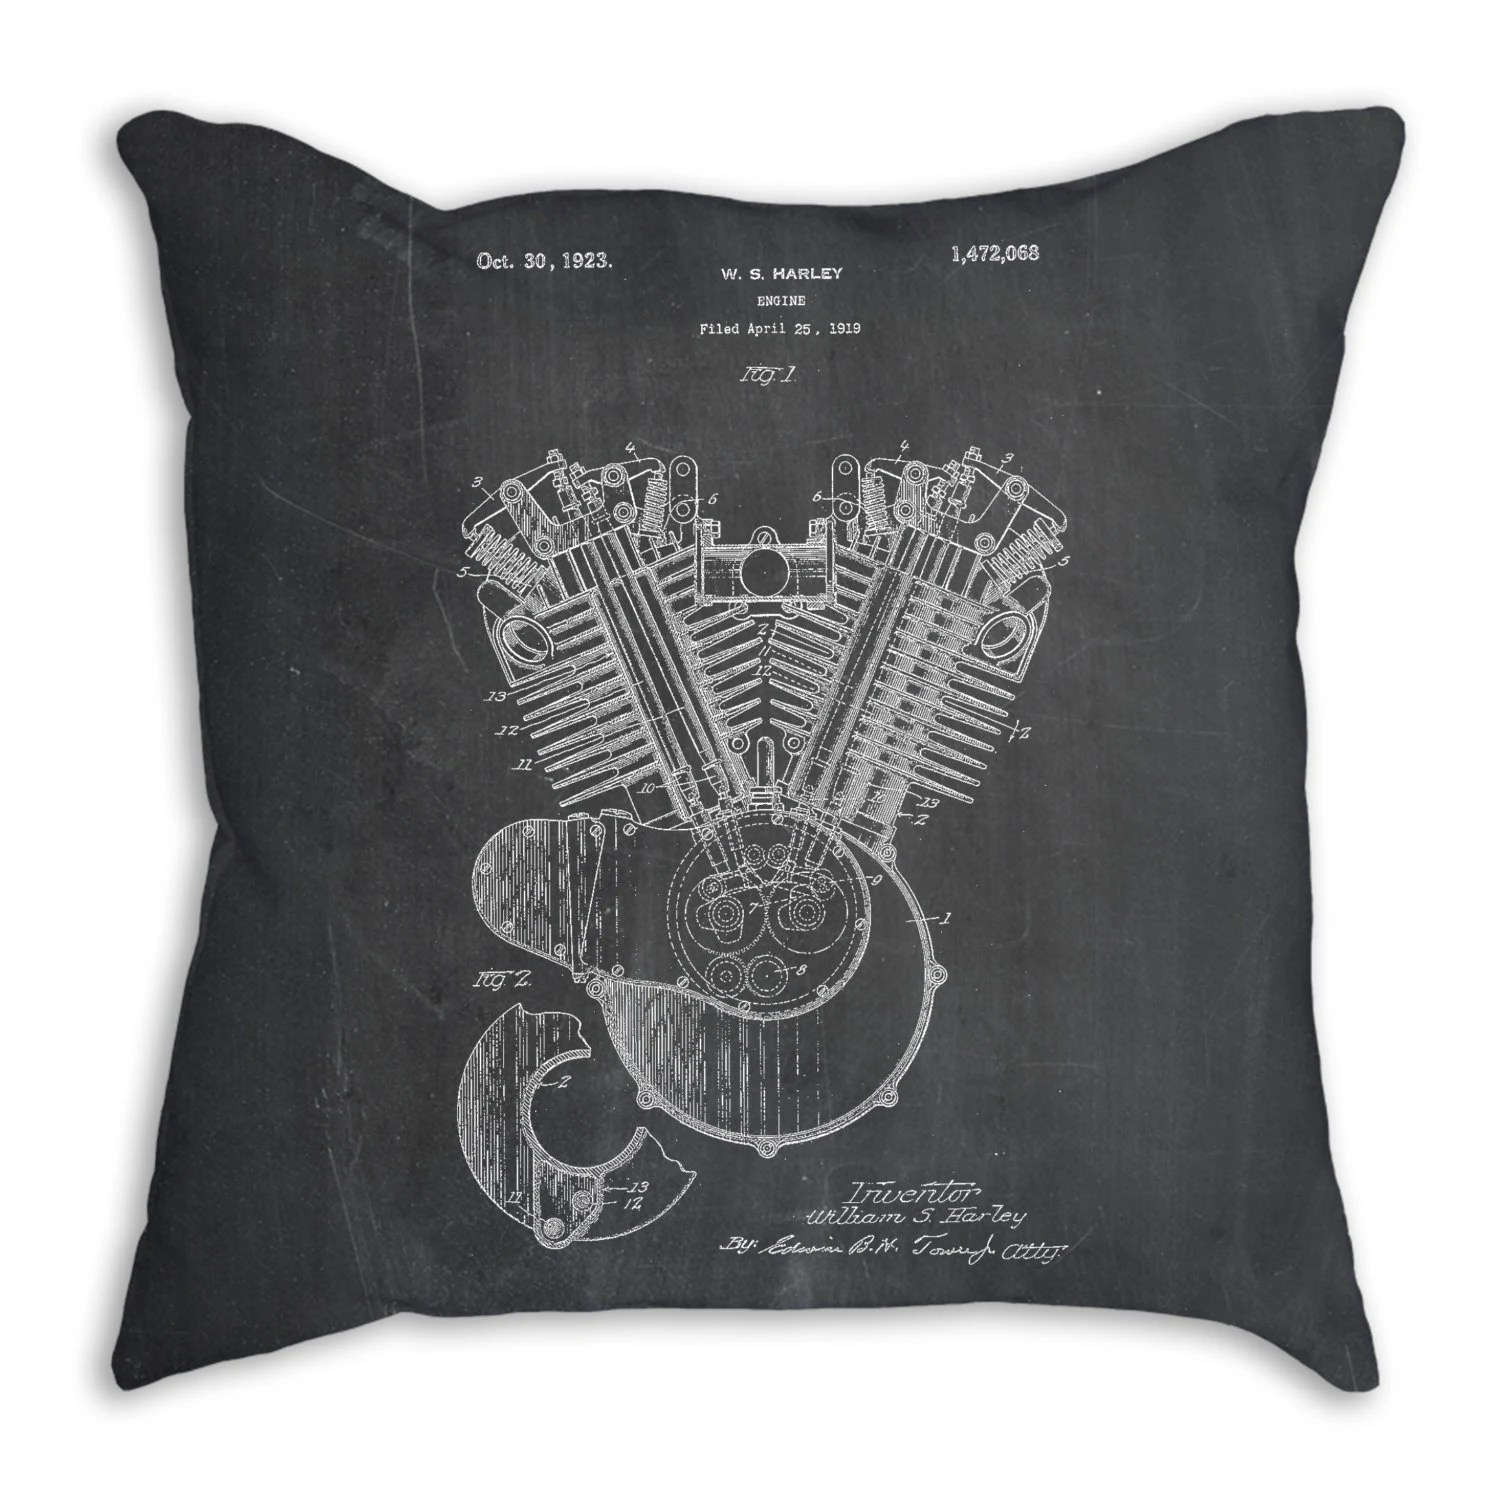 Bettwäsche Harley Davidson Harley Davidson Engine 1919 Patent Pillow Harley Davidson Bedding Motorcycle Blueprint Harley Motorcycle Motorcycle Bedding Pp0024